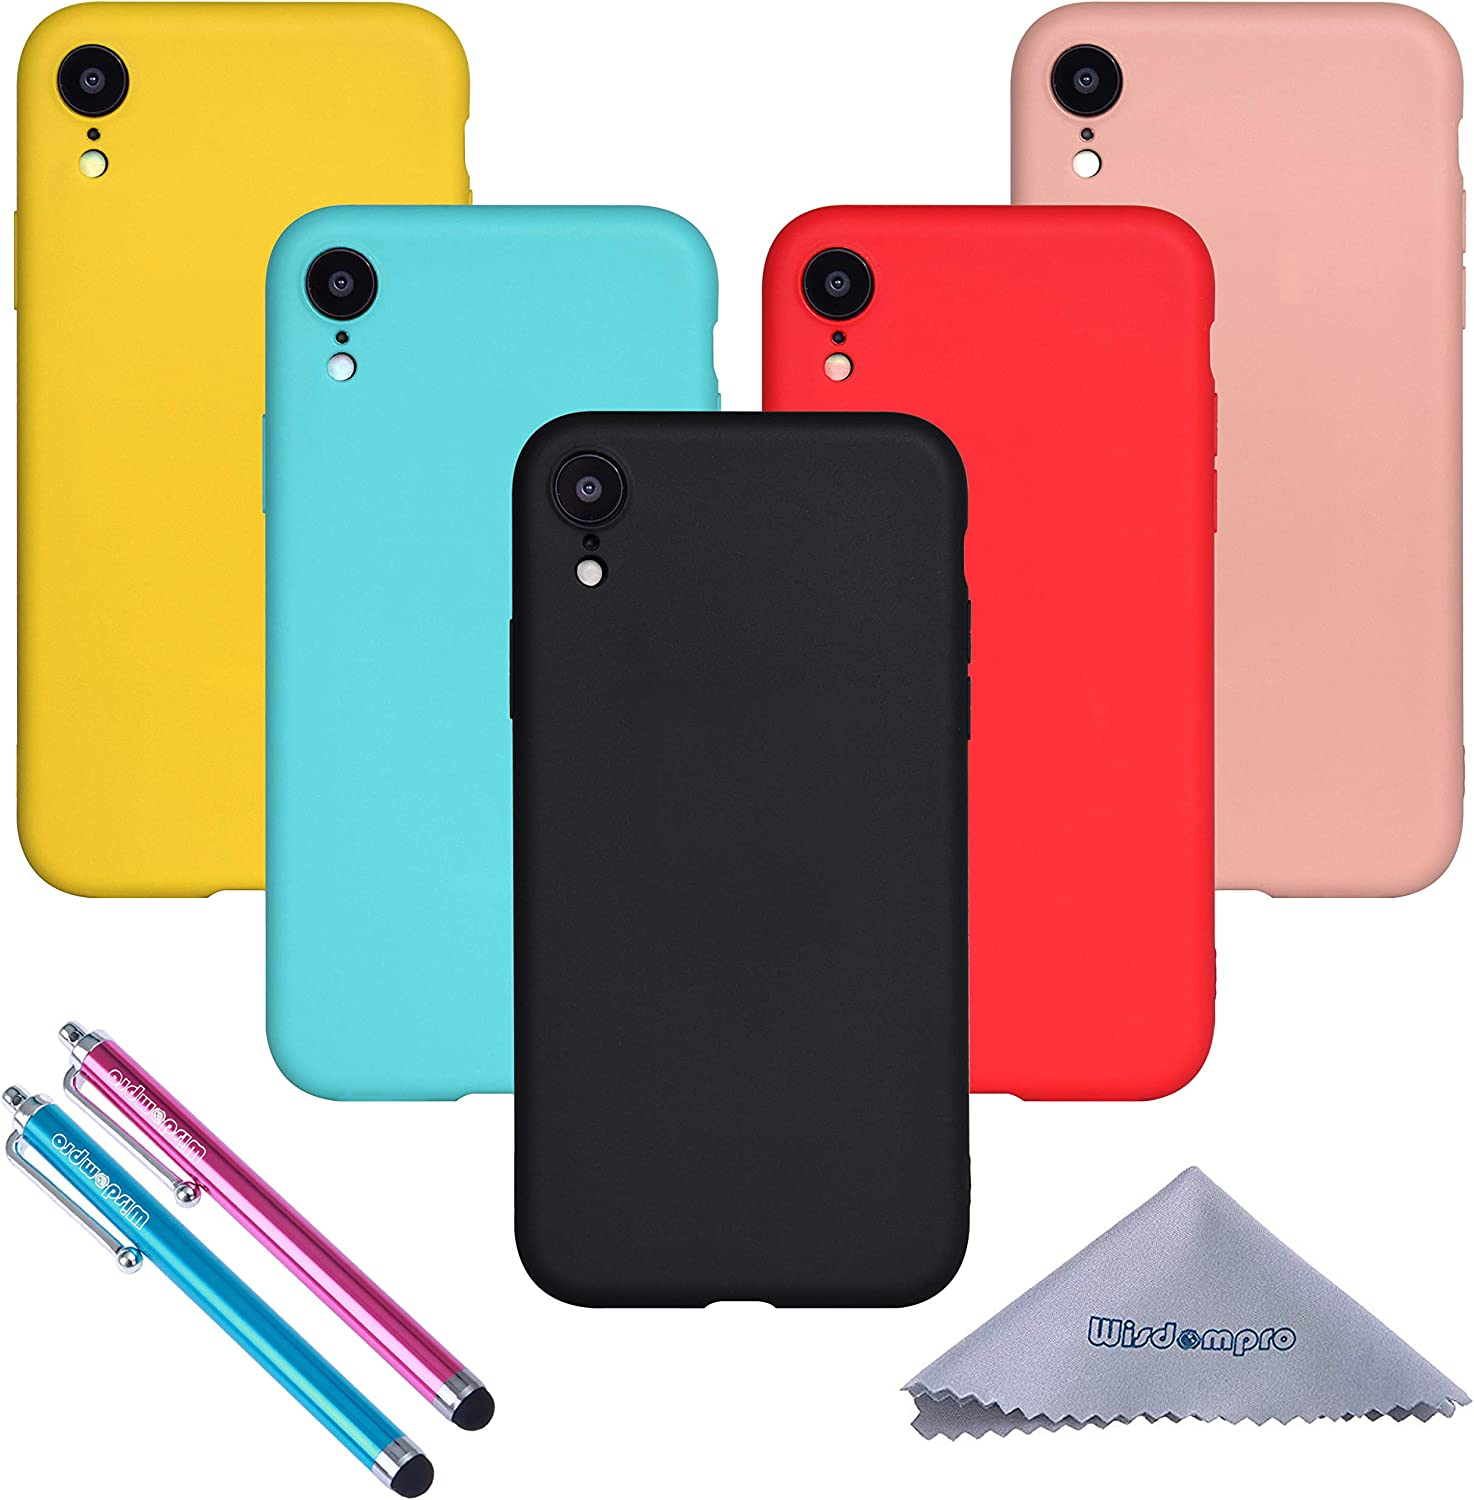 Wisdompro iPhone XR Case, Bundle of 5 Pack Extra Thin Slim Jelly Soft TPU Gel Protective Case Cover for Apple iPhone XR (Black, Aqua Blue, Naked Skin Pink, Yellow, Red)- Candy Color